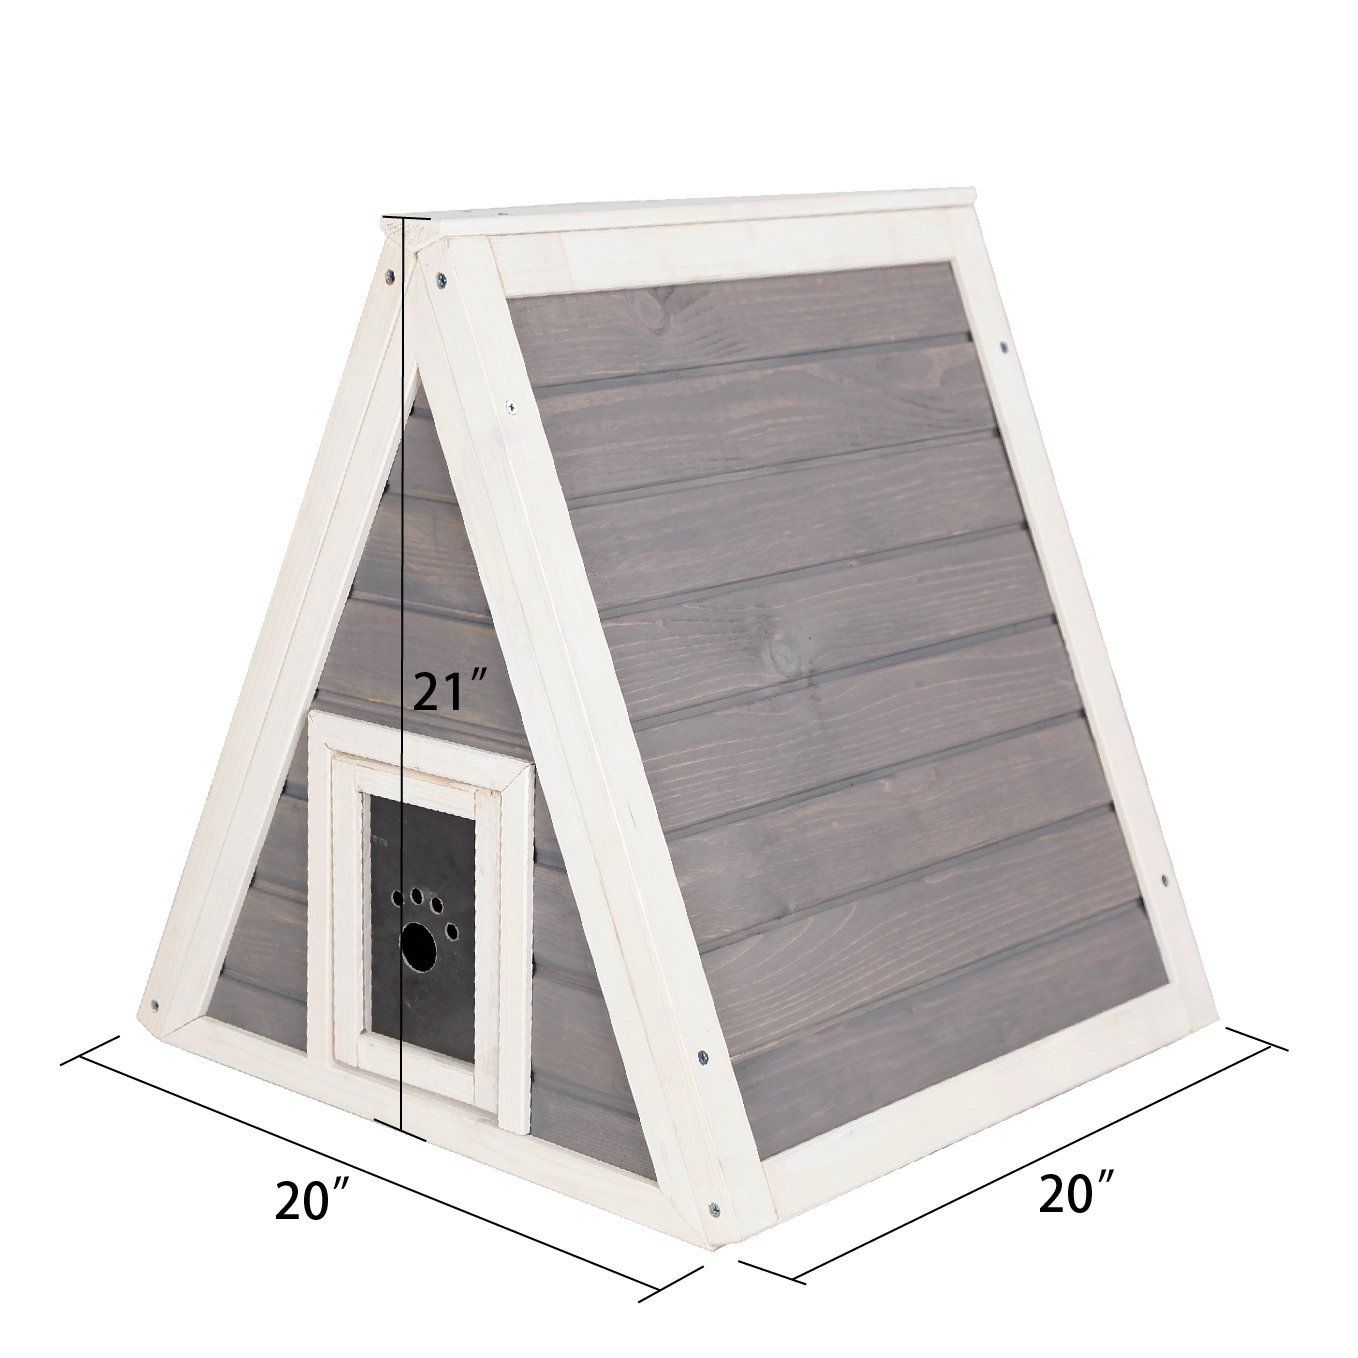 Petsfit Outdoor Indoor Cat Shelter For Feral Cat Wooden Cat House With Eave Cat Condo With Multi Colors Availabl Outdoor Cat House Cat House Wooden Cat House